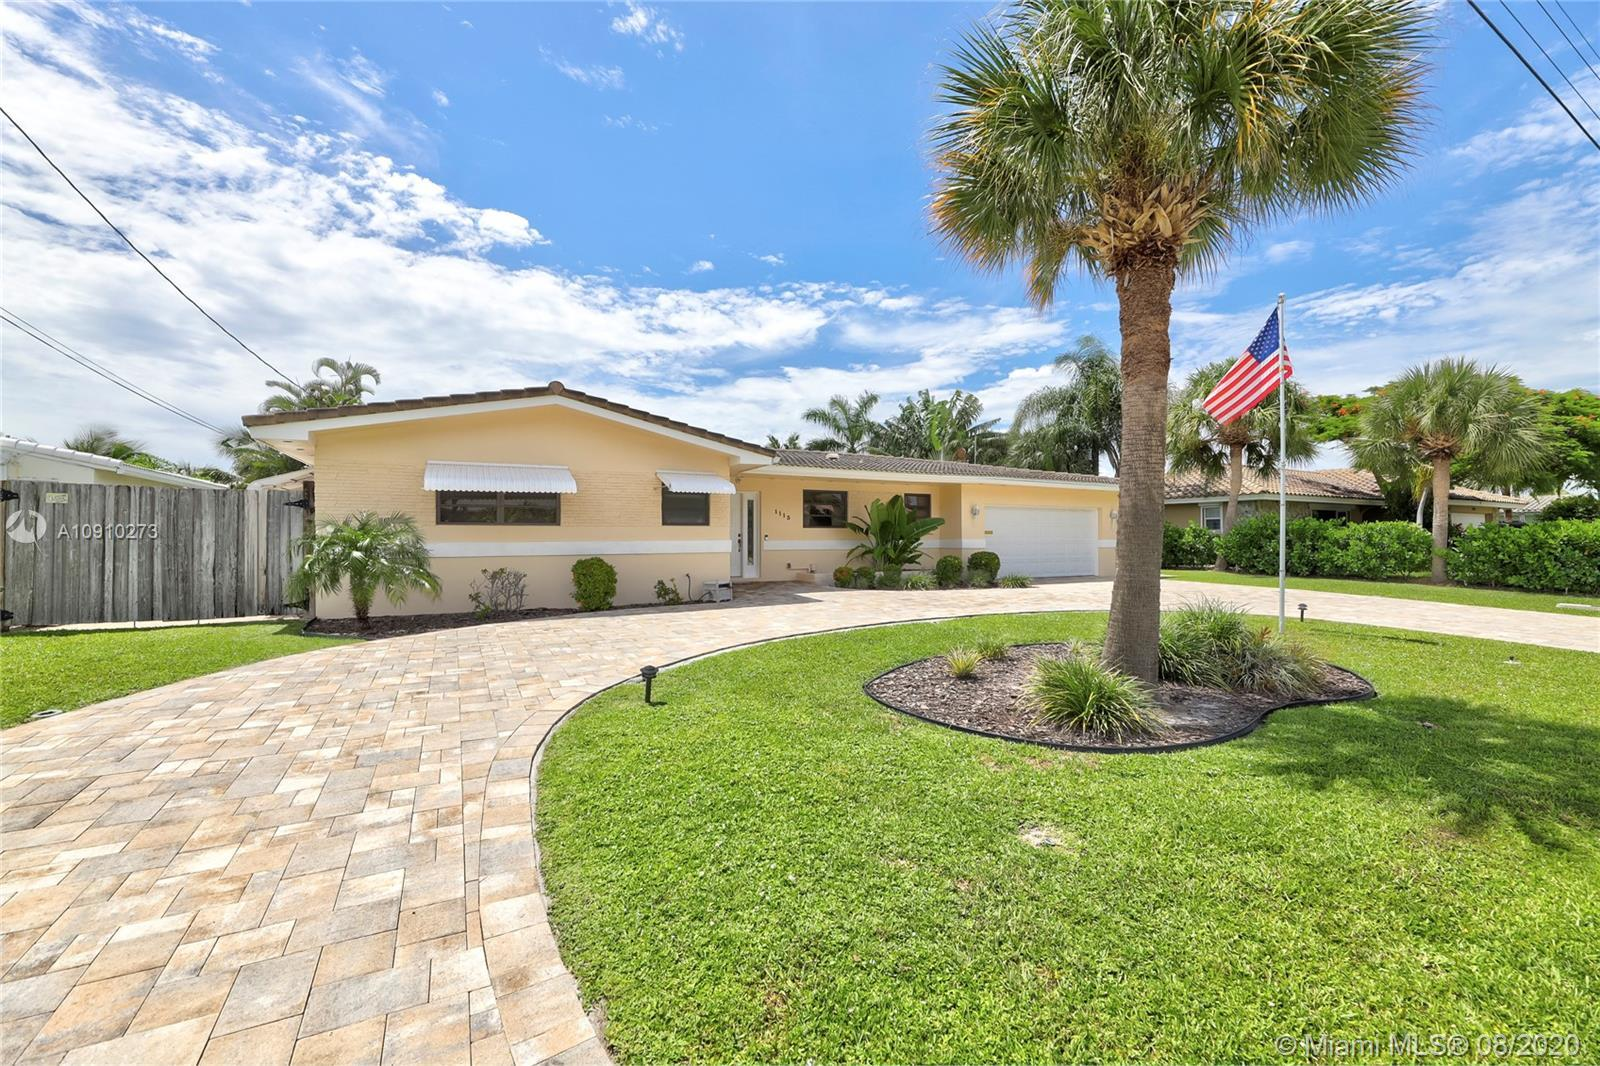 Welcome to this beautifully taken care of home in highly sought after The Cove! Brand new pavered ci